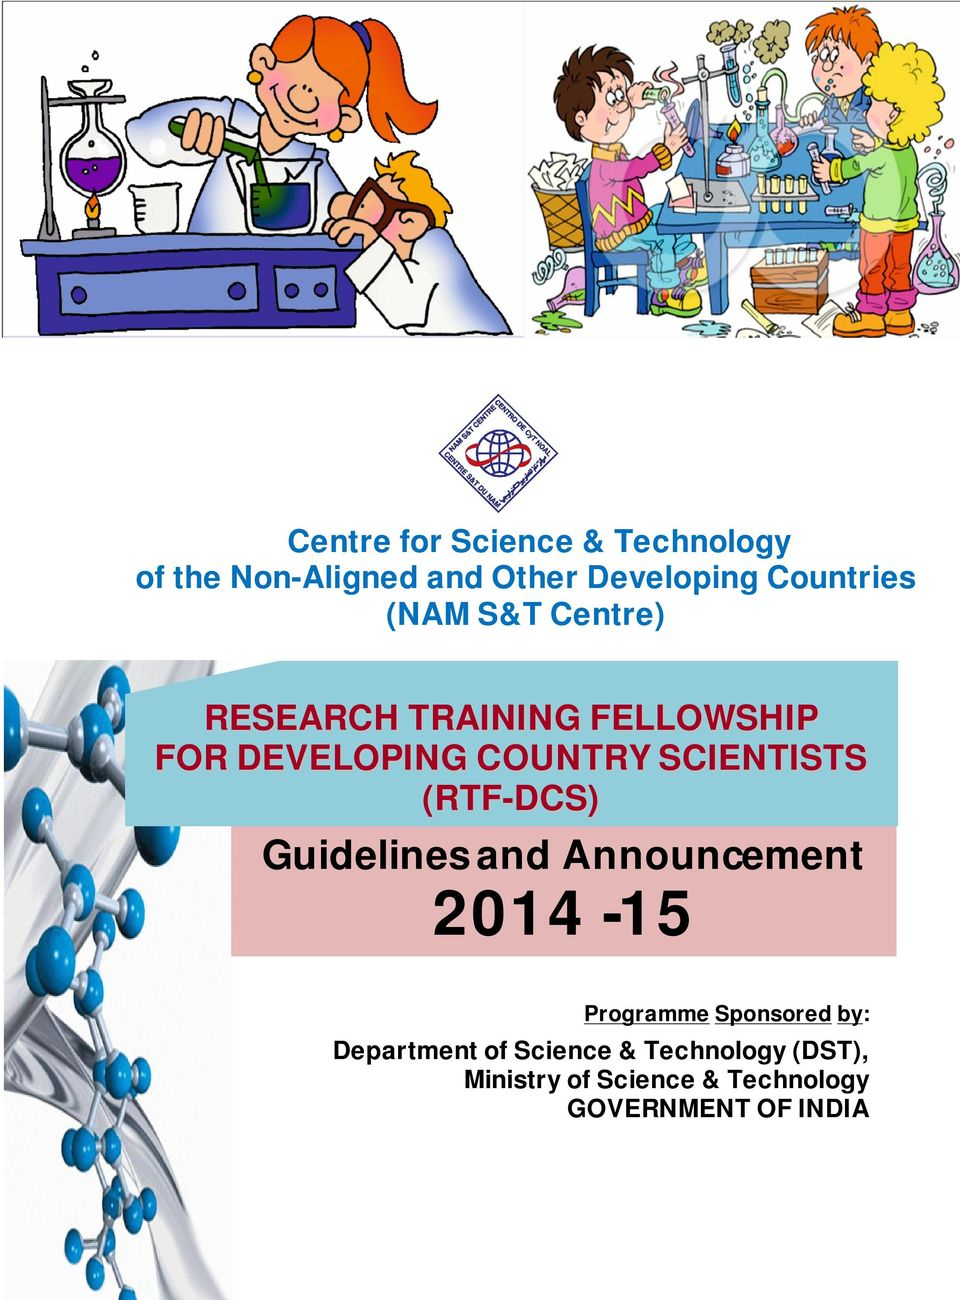 (RTF-DCS) Guidelines and Announcement 2014-15 Programme Sponsored by: Department